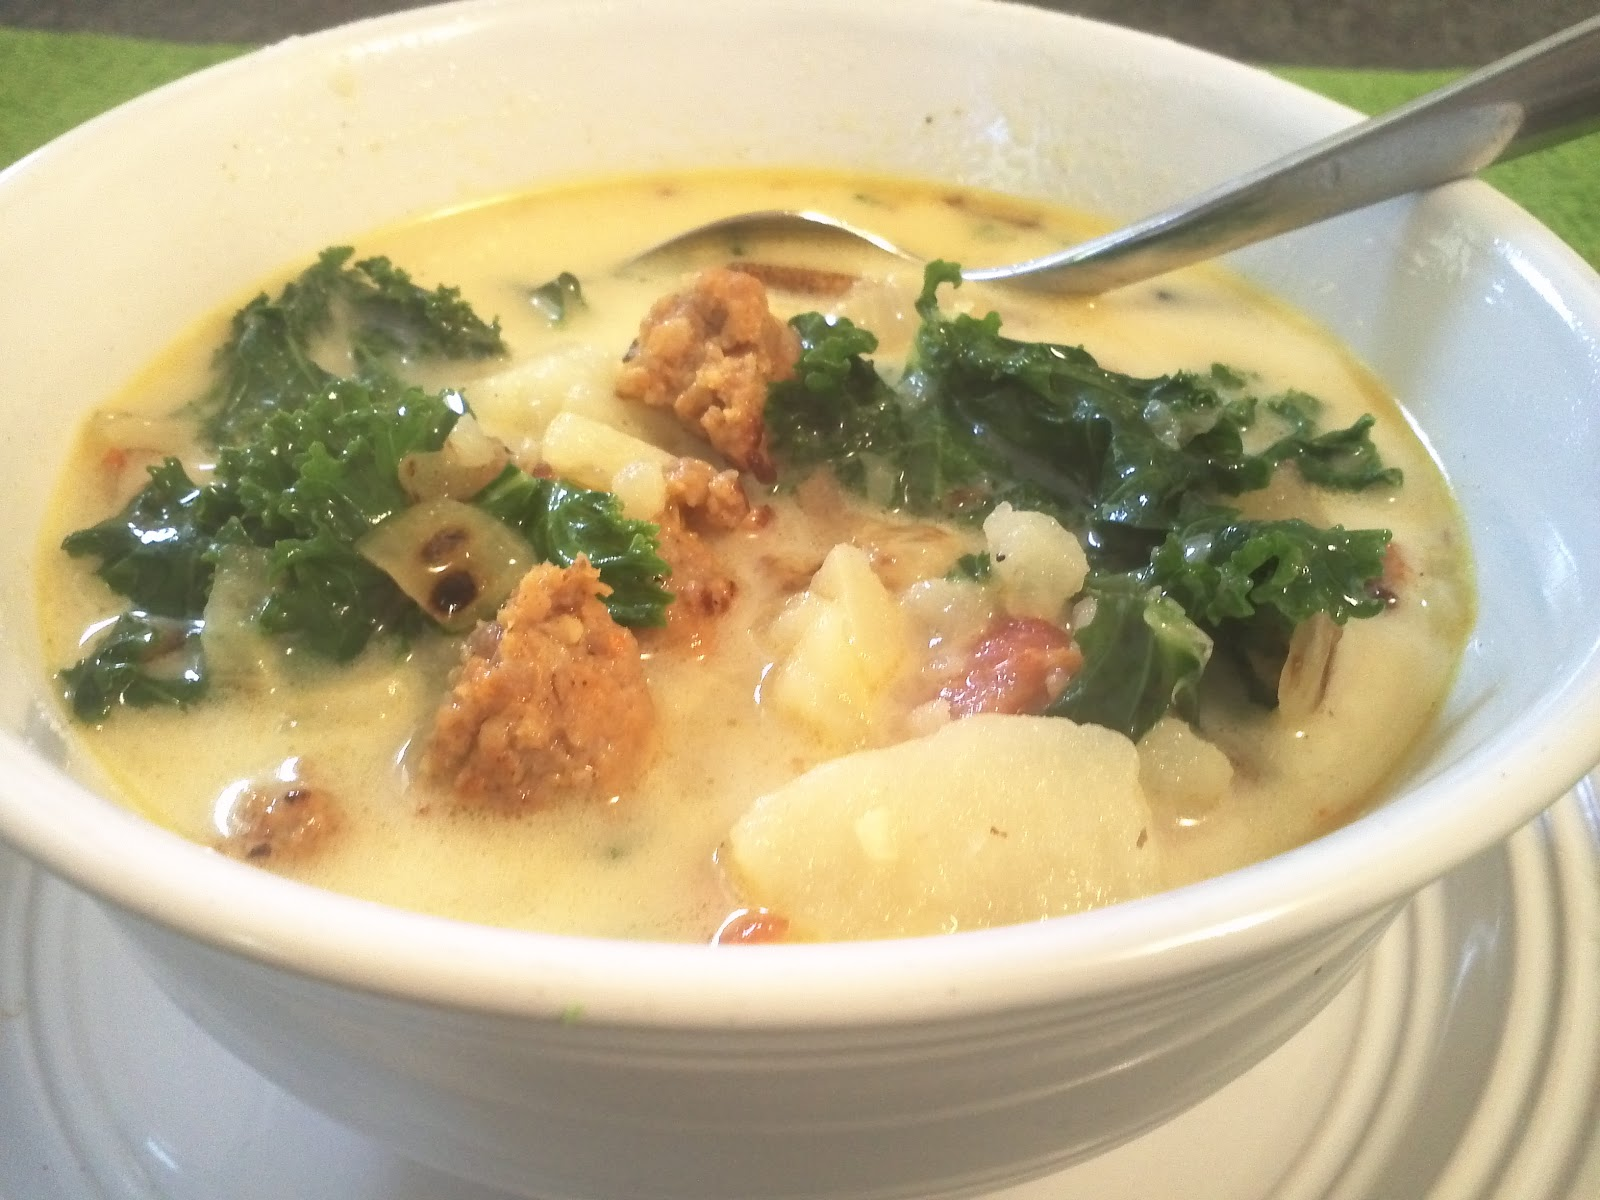 Sweet macedonia olive garden 39 s zuppa toscana sausage potato kale soup for Olive garden potato sausage kale soup recipe